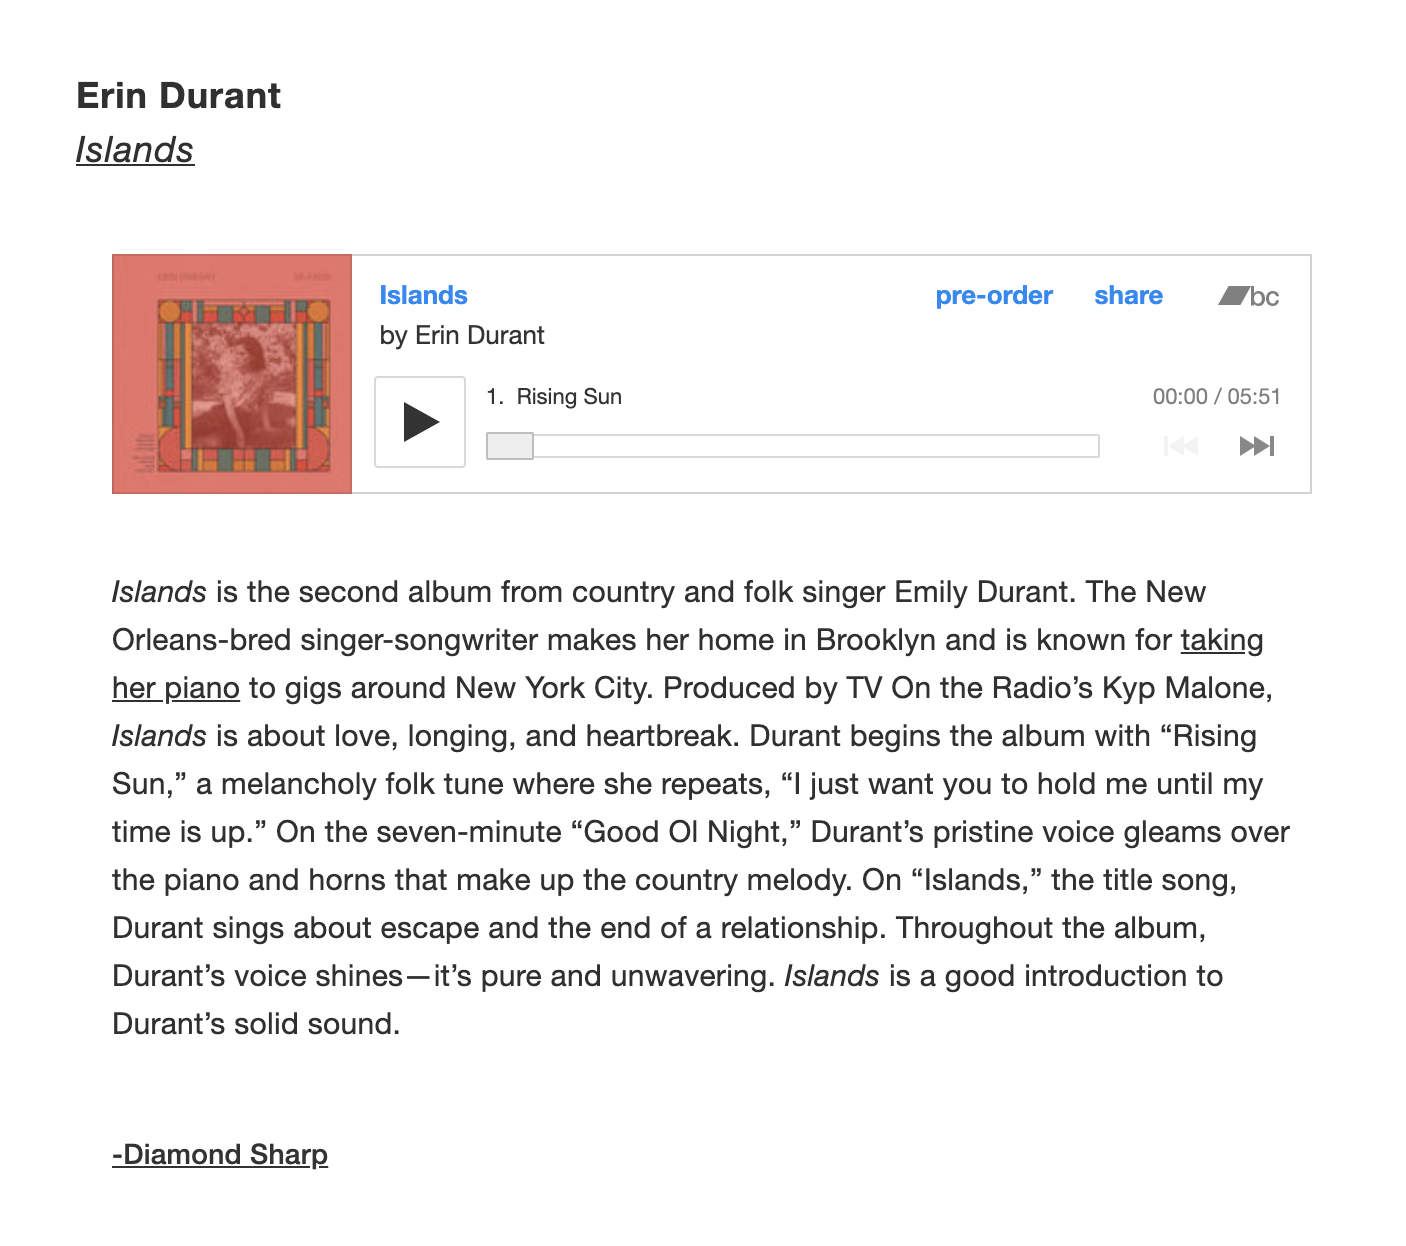 "Erin Durant on Bandcamp Daily - June 24, 2019Bandcamp Daily has shared Islands, writing ""The New Orleans-bred singer-songwriter makes her home in Brooklyn and is known for taking her piano to gigs around New York City. Produced by TV On the Radio's Kyp Malone, Islands is about love, longing, and heartbreak. Durant begins the album with ""Rising Sun,"" a melancholy folk tune where she repeats, ""I just want you to hold me until my time is up."" On the seven-minute ""Good Ol Night,"" Durant's pristine voice gleams over the piano and horns that make up the country melody. On ""Islands,"" the title song, Durant sings about escape and the end of a relationship. Throughout the album, Durant's voice shines—it's pure and unwavering. Islands is a good introduction to Durant's solid sound.""Click here to preorder your copy on LP or CD. The album comes out this Friday, June 28th."